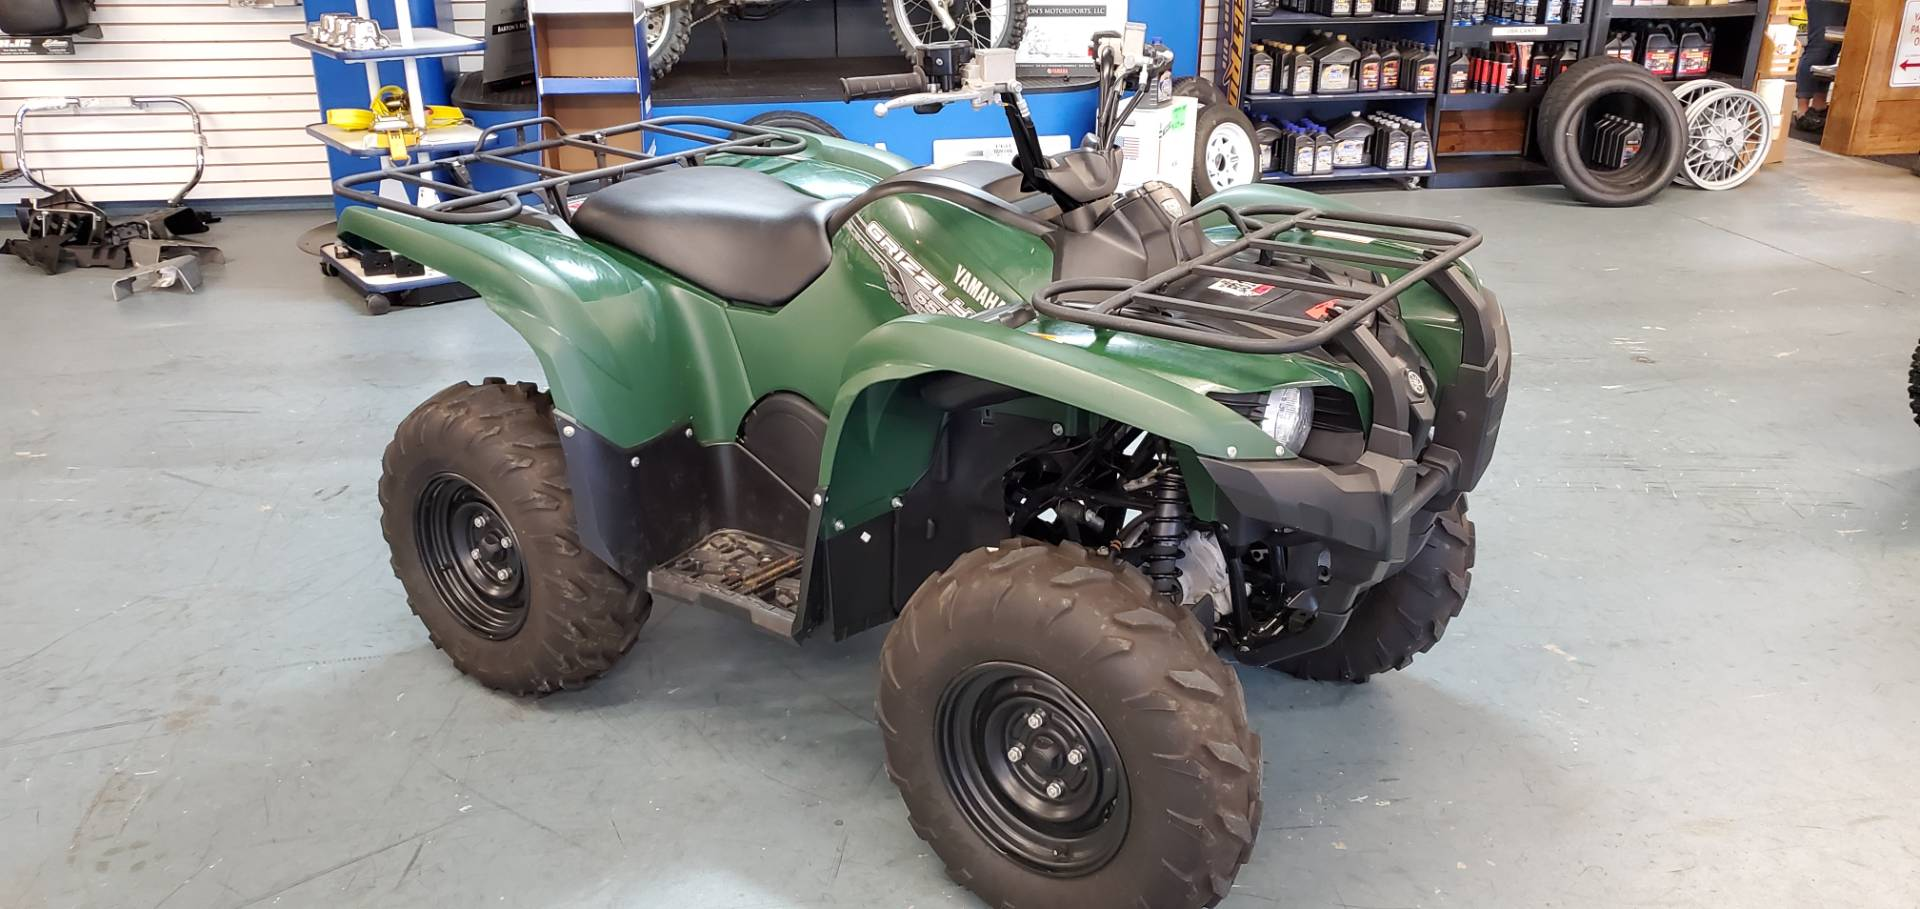 2014 Yamaha Grizzly 550 FI Auto. 4x4 in Tamworth, New Hampshire - Photo 1